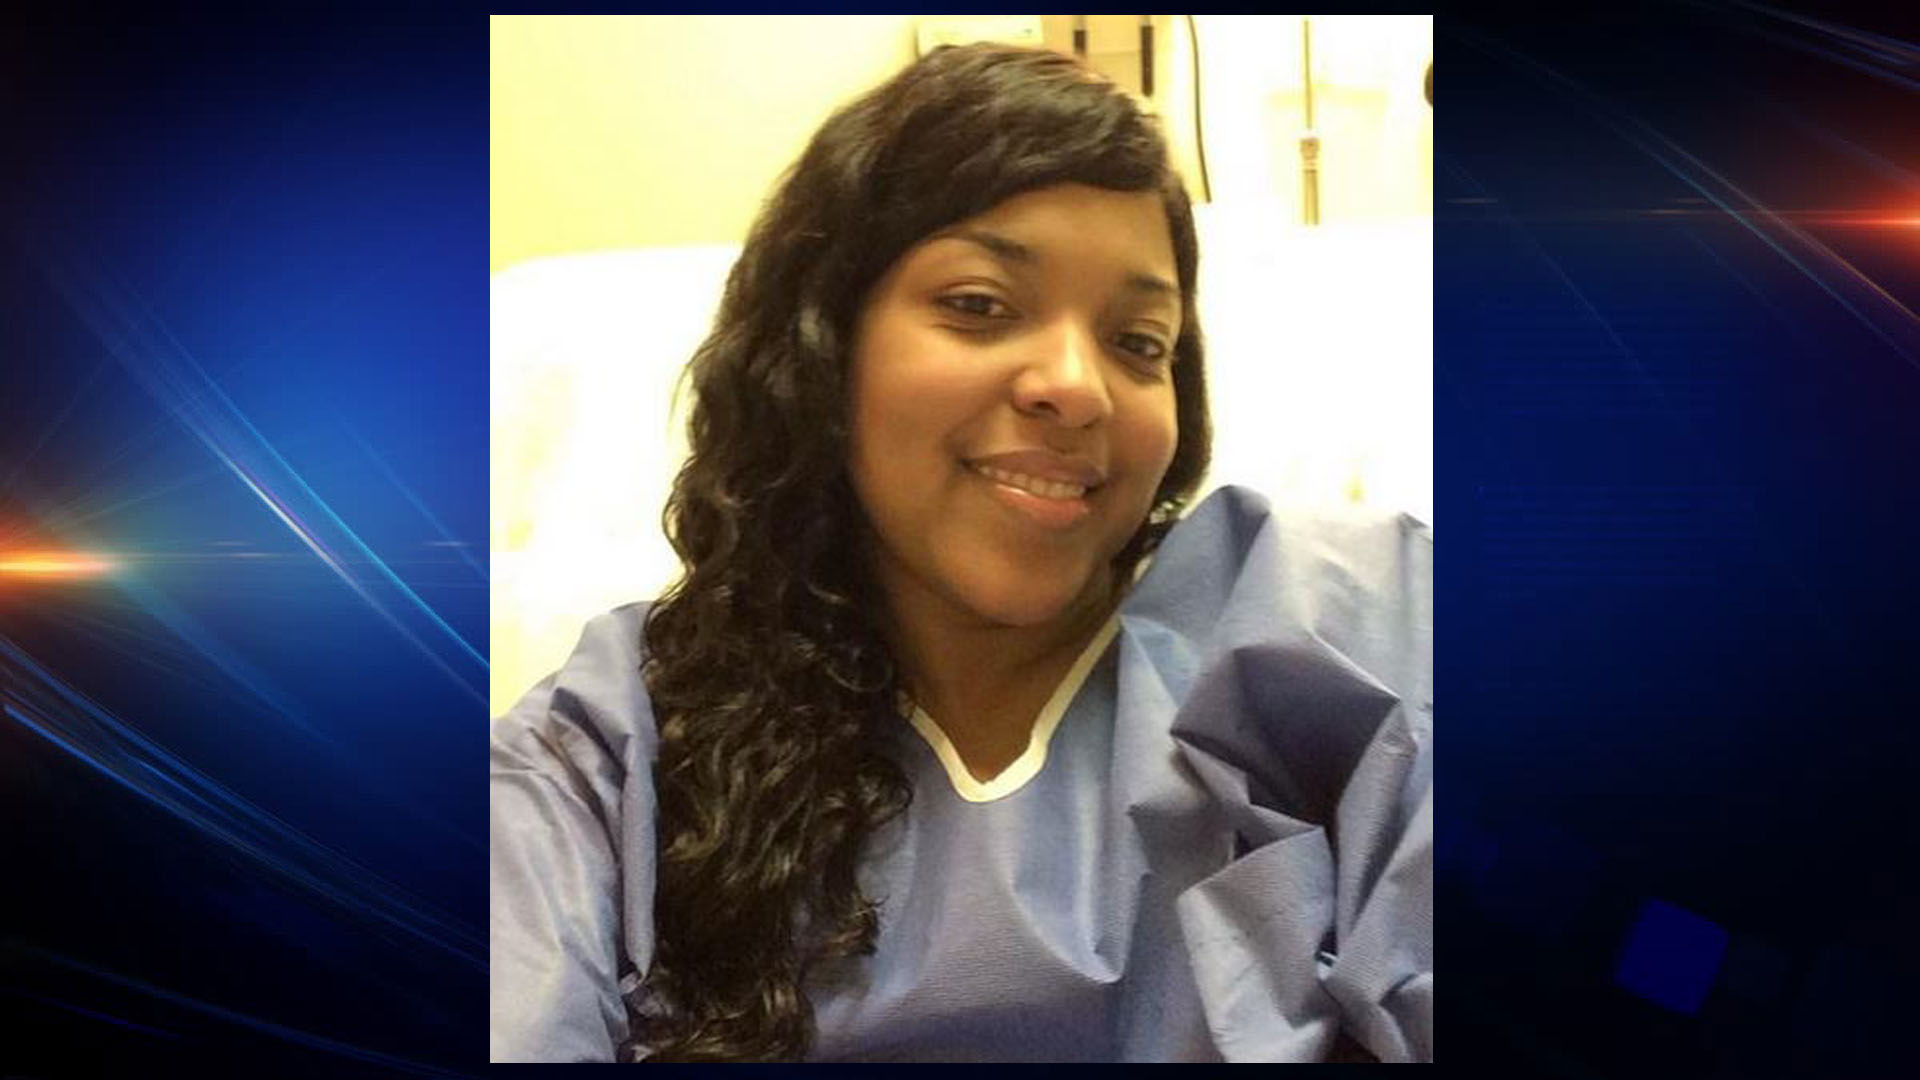 Amber Joy Vinson, a nurse at Texas Health Presbyterian Hospital Dallas, who was infected with Ebola while treating patient Thomas Eric Duncan, is said to no longer have the virus detected in her blood while undergoing treatment at Emory University Hospital in Atlanta.